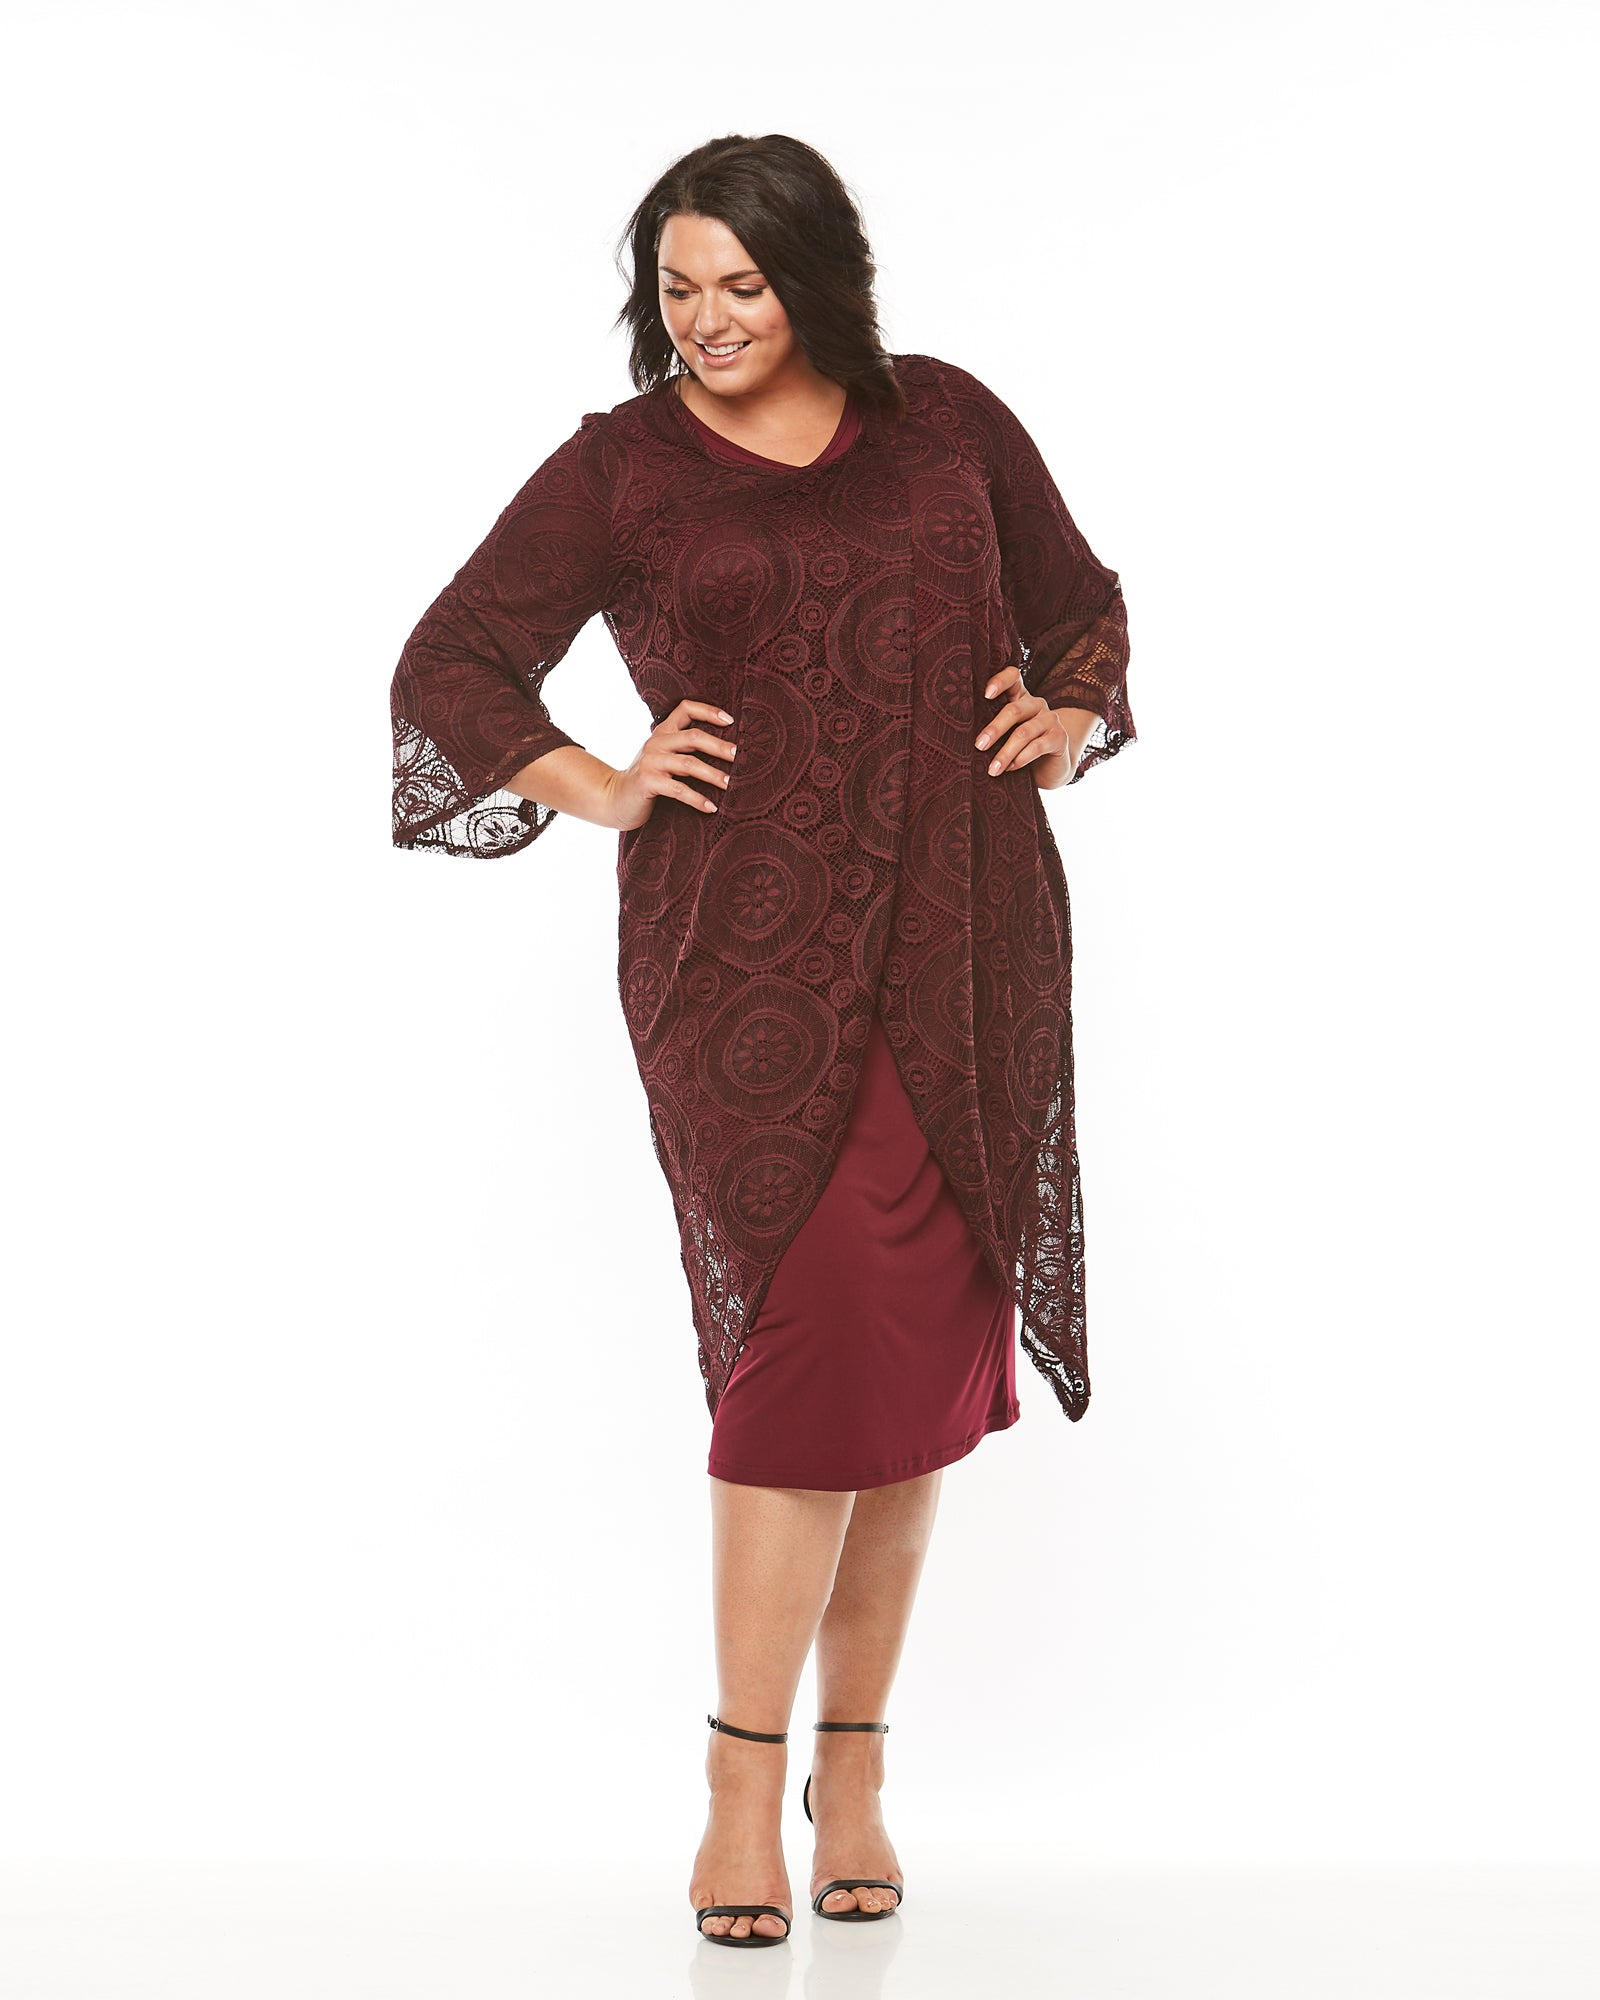 Jessica Overthrow Lace Jacket -Burgundy- LAST ONES SIZE 12 and 14